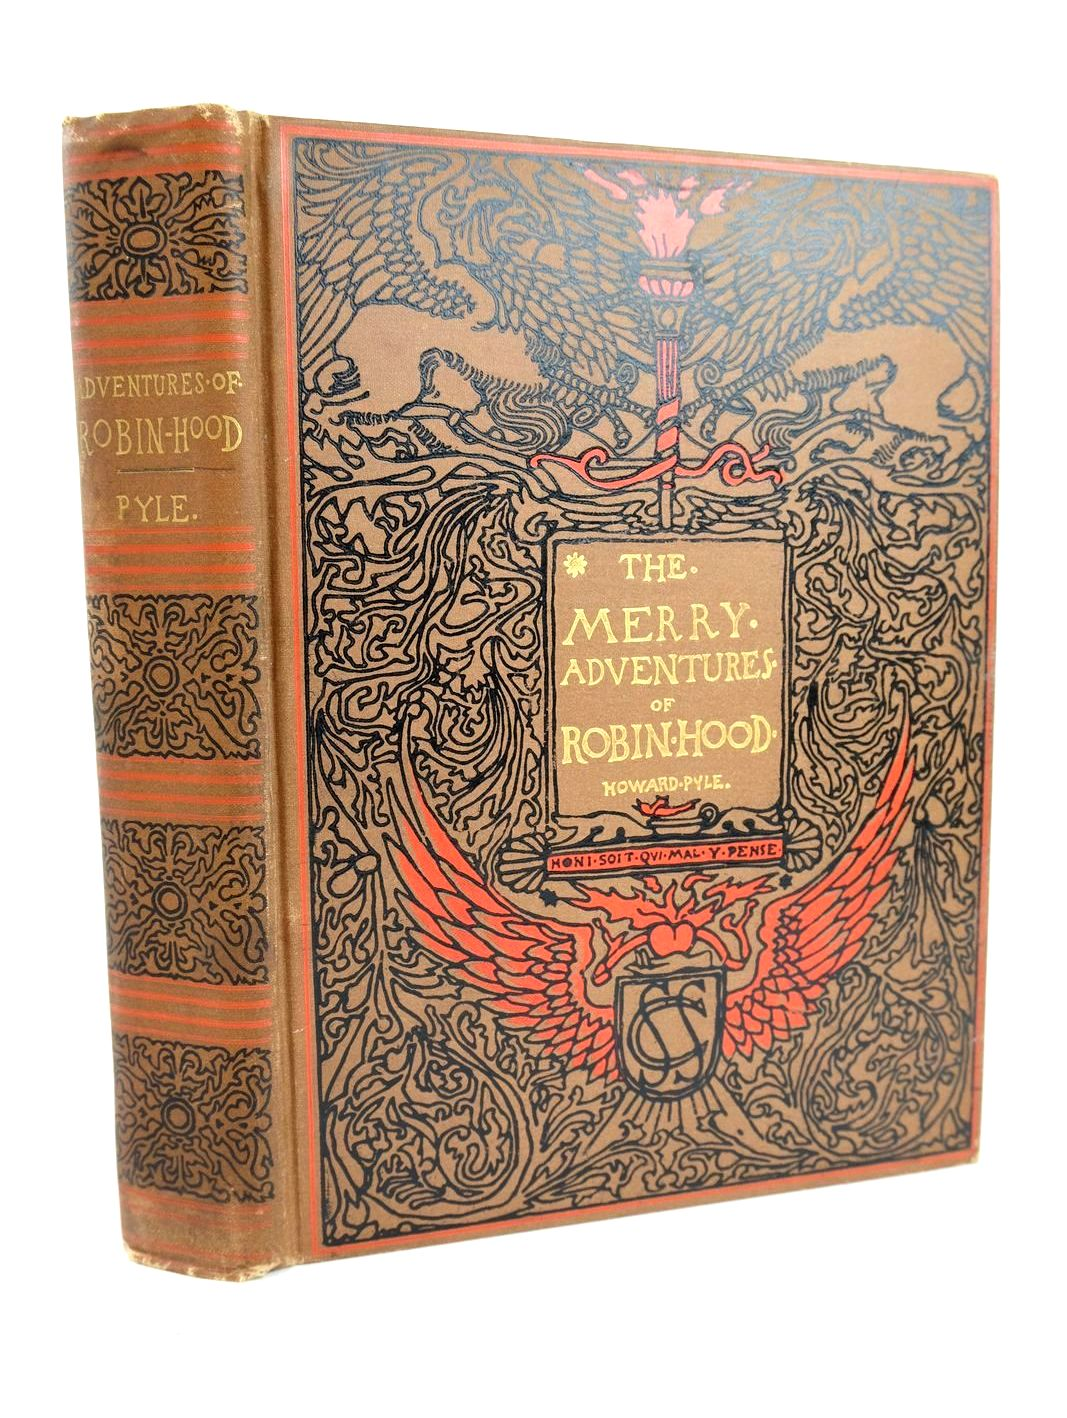 Photo of THE MERRY ADVENTURES OF ROBIN HOOD OF GREAT RENOWN, IN NOTTINGHAMSHIRE written by Pyle, Howard illustrated by Pyle, Howard published by Charles Scribner's Sons (STOCK CODE: 1318768)  for sale by Stella & Rose's Books